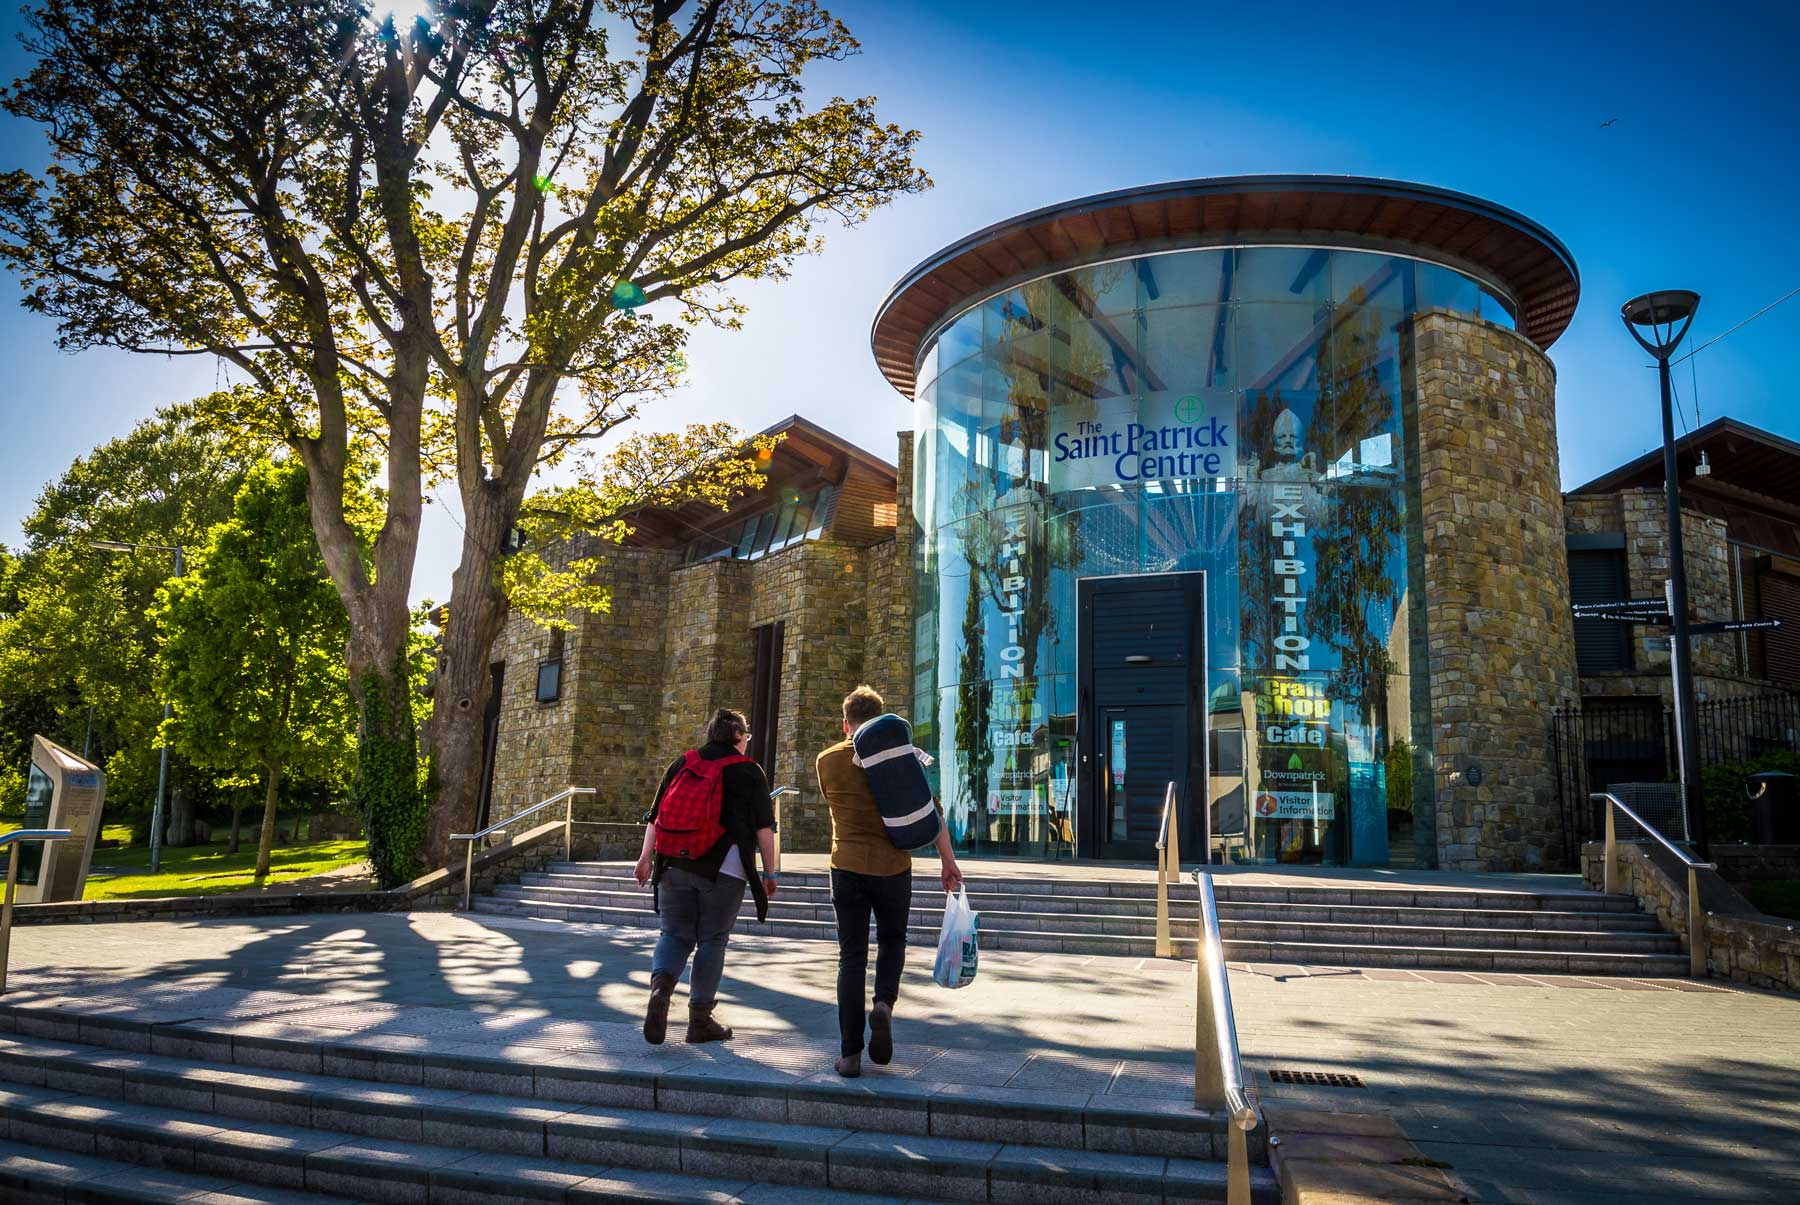 The Saint Patrick Centre in Downpatrick is a good starting point to discover more about him and follow St Patrick's trail.